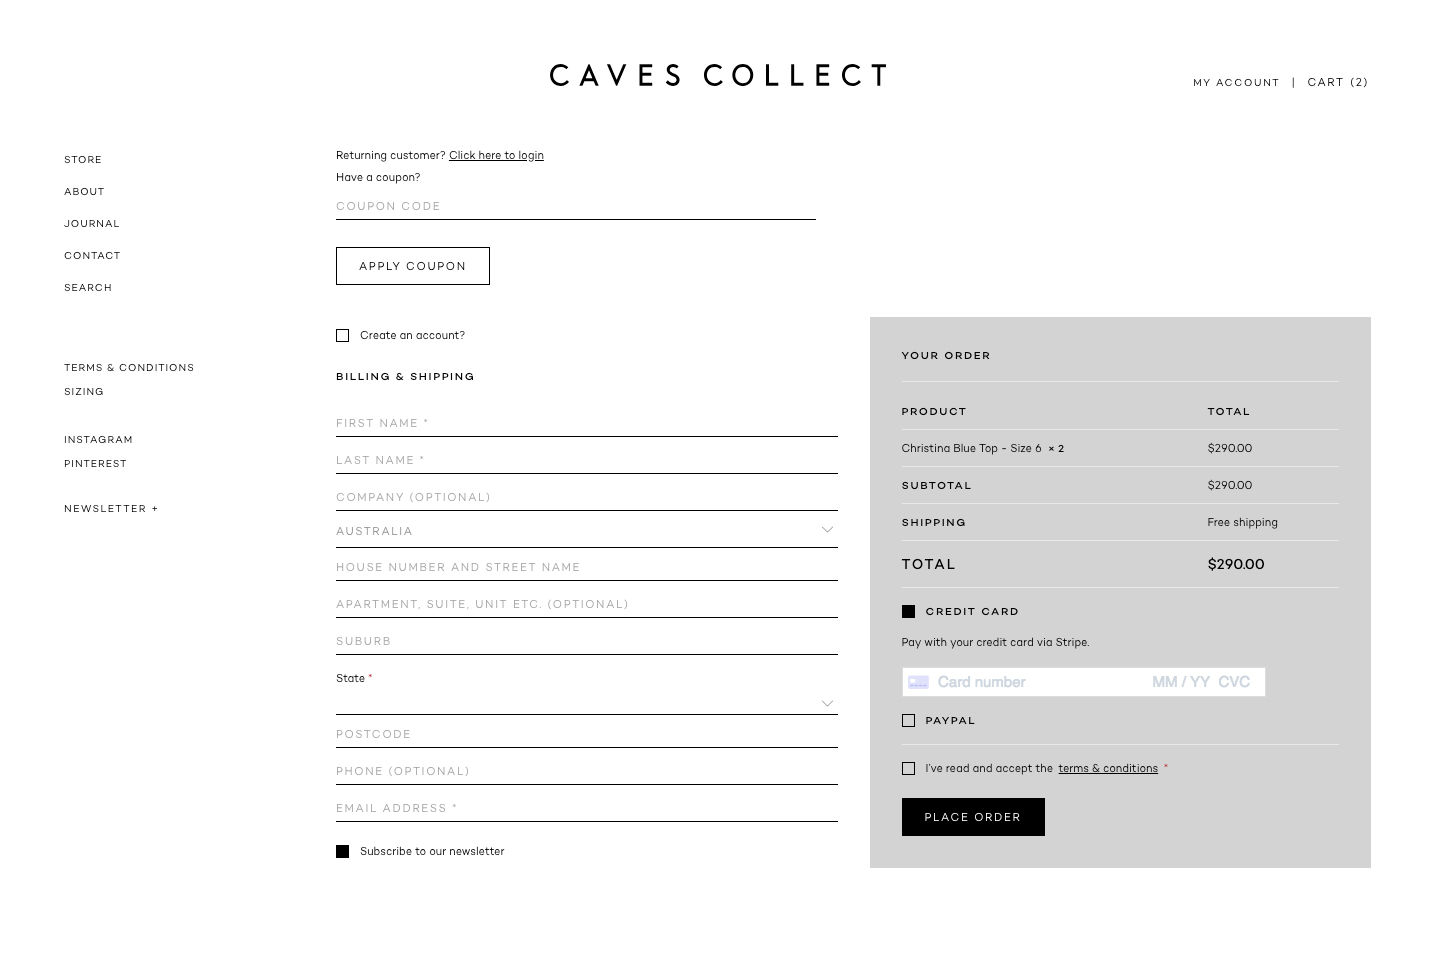 Caves Collect Website - Store Page